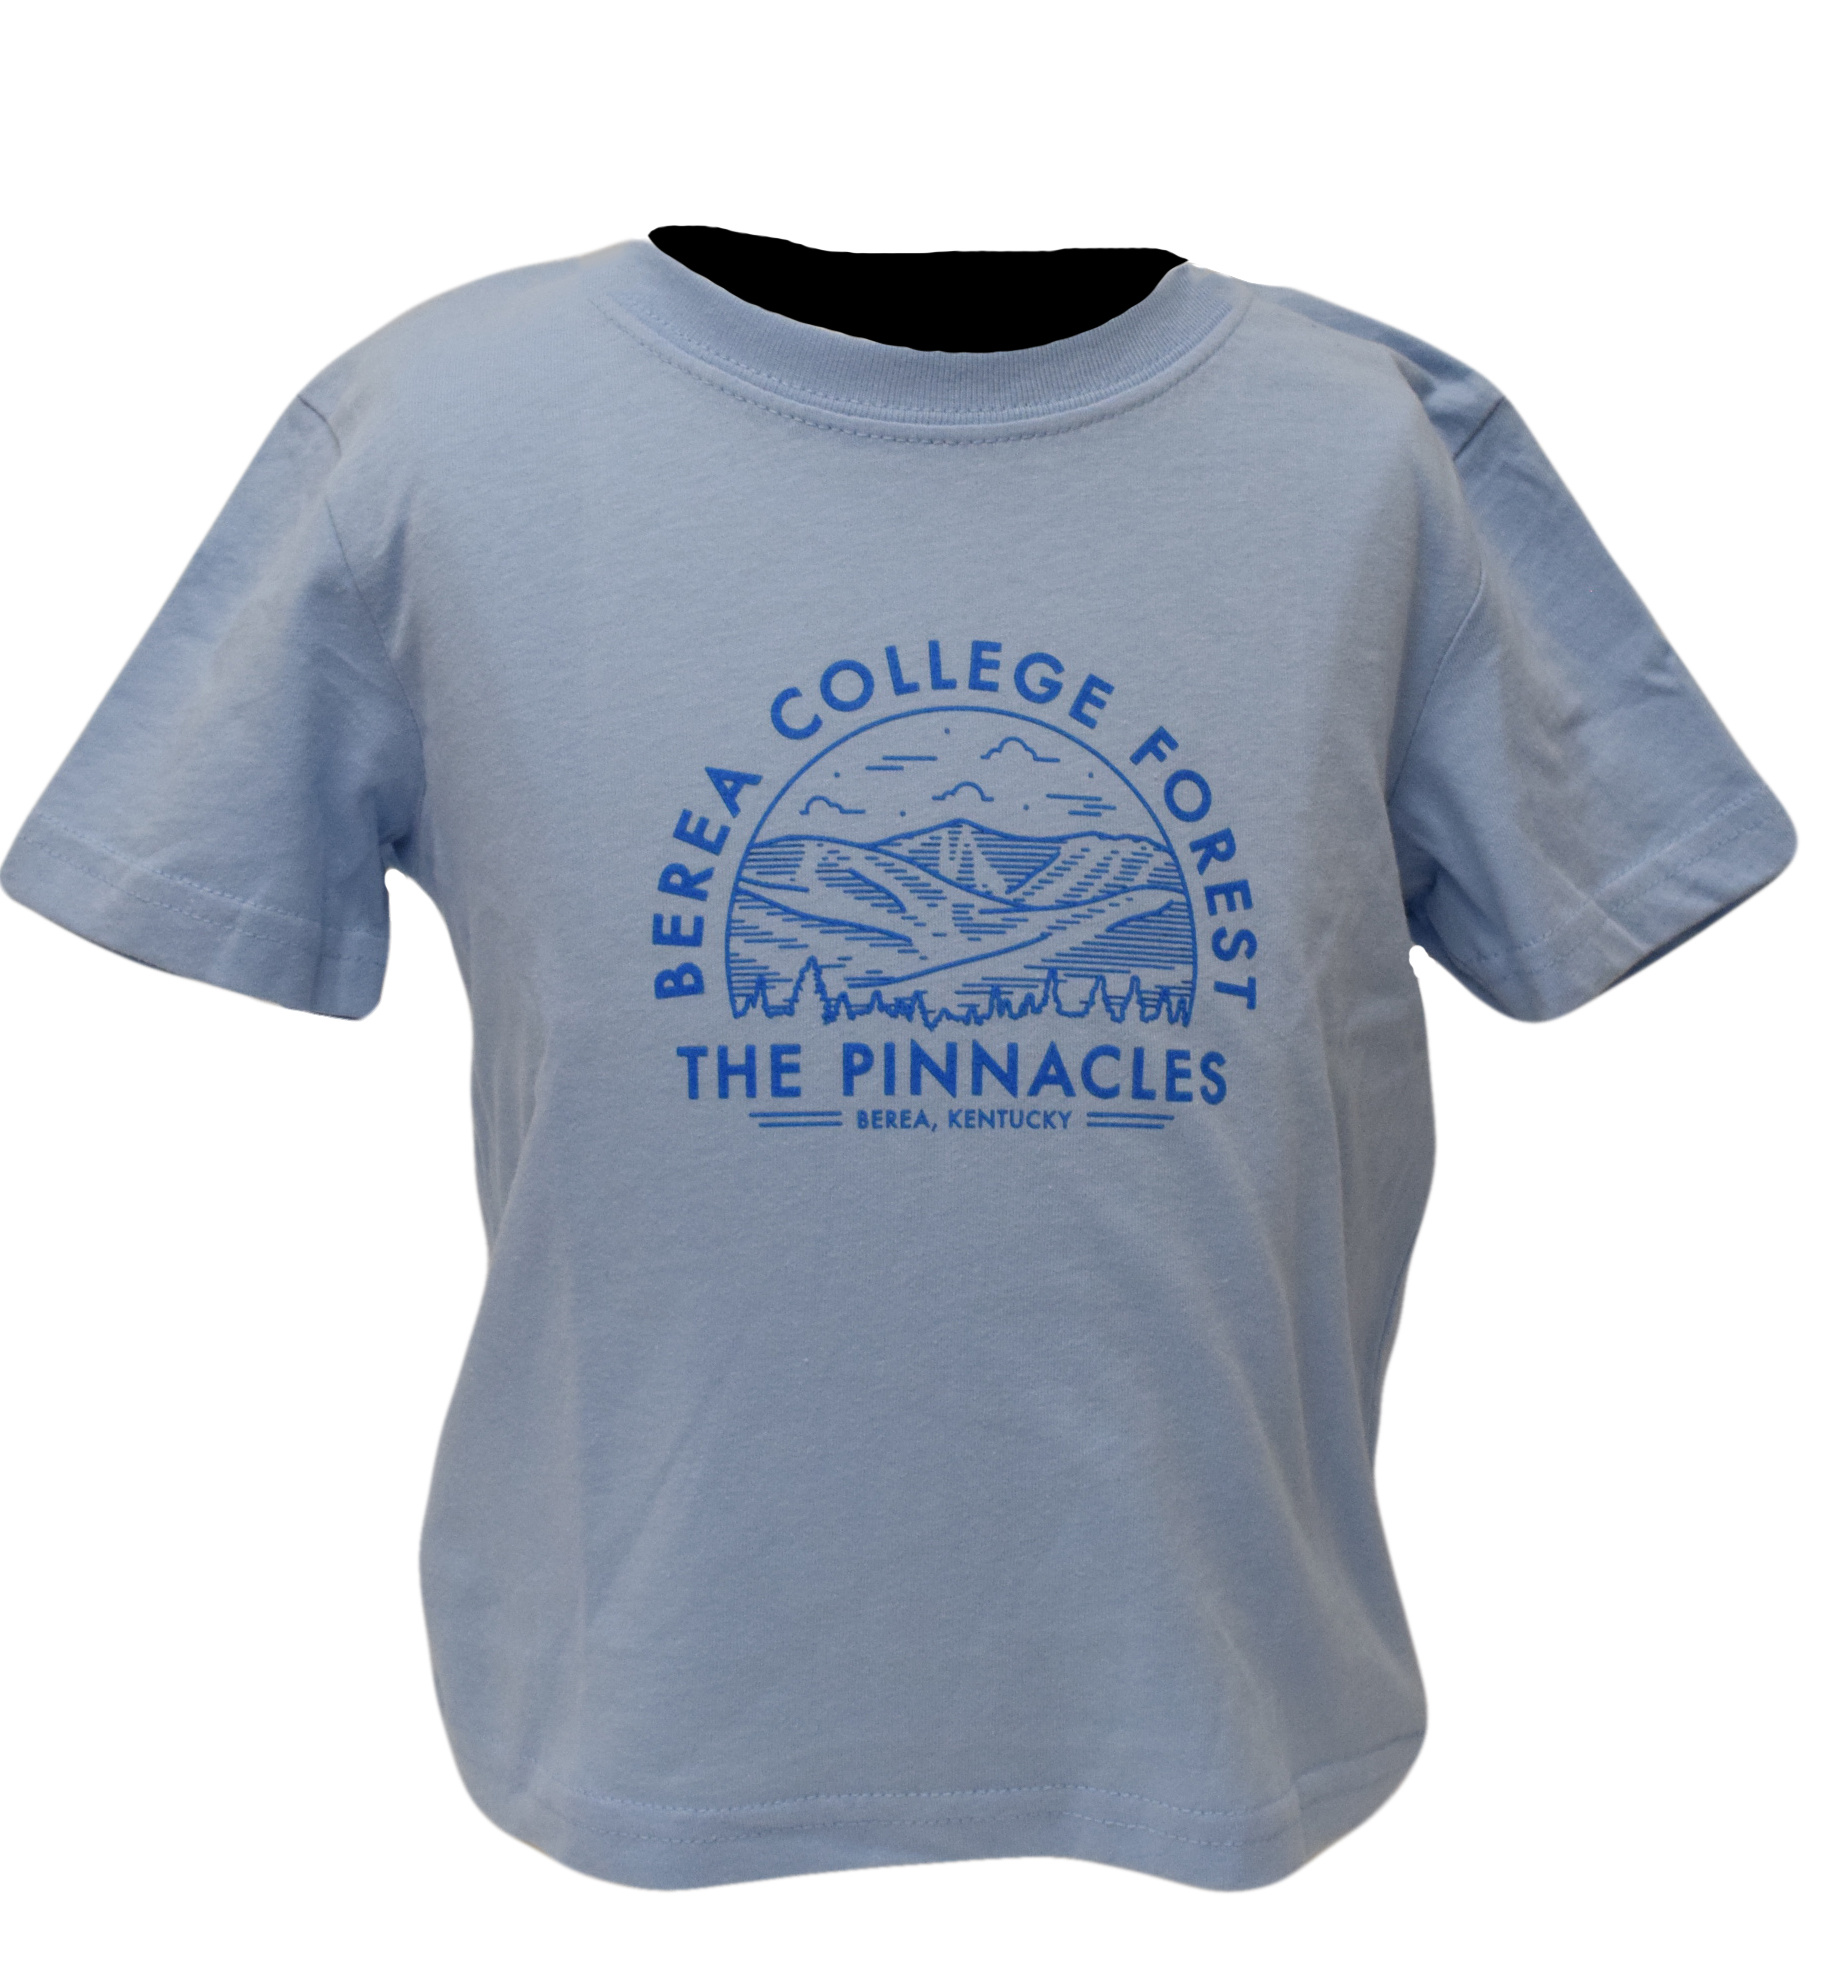 The Pinnacles Berea College Infant T-Shirt-1